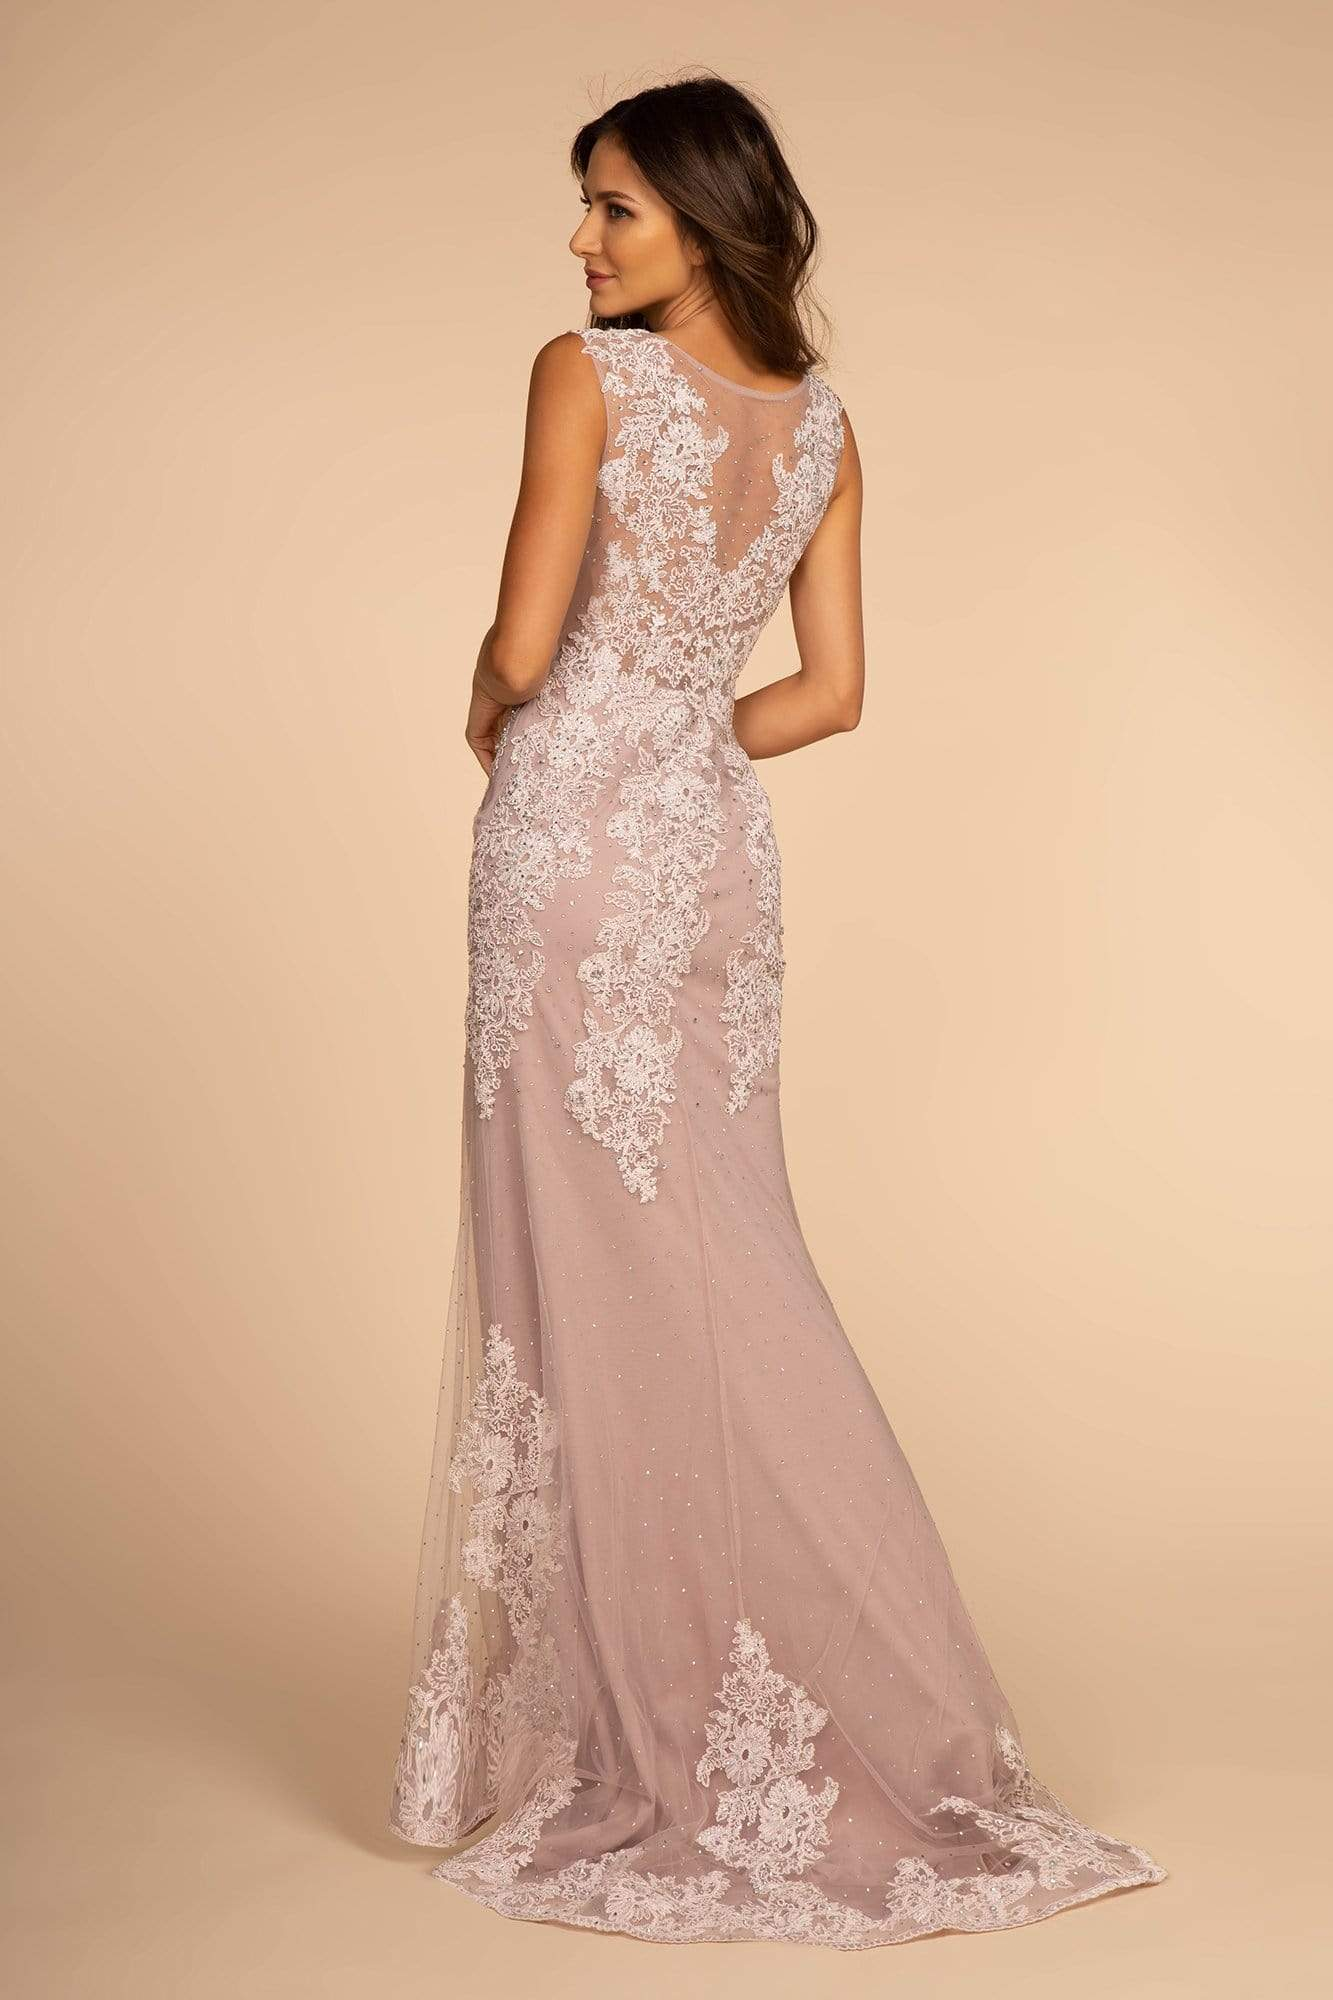 GLS by Gloria - GL2616 Cap Sleeve Appliqued Illusion Mermaid Gown Special Occasion Dress